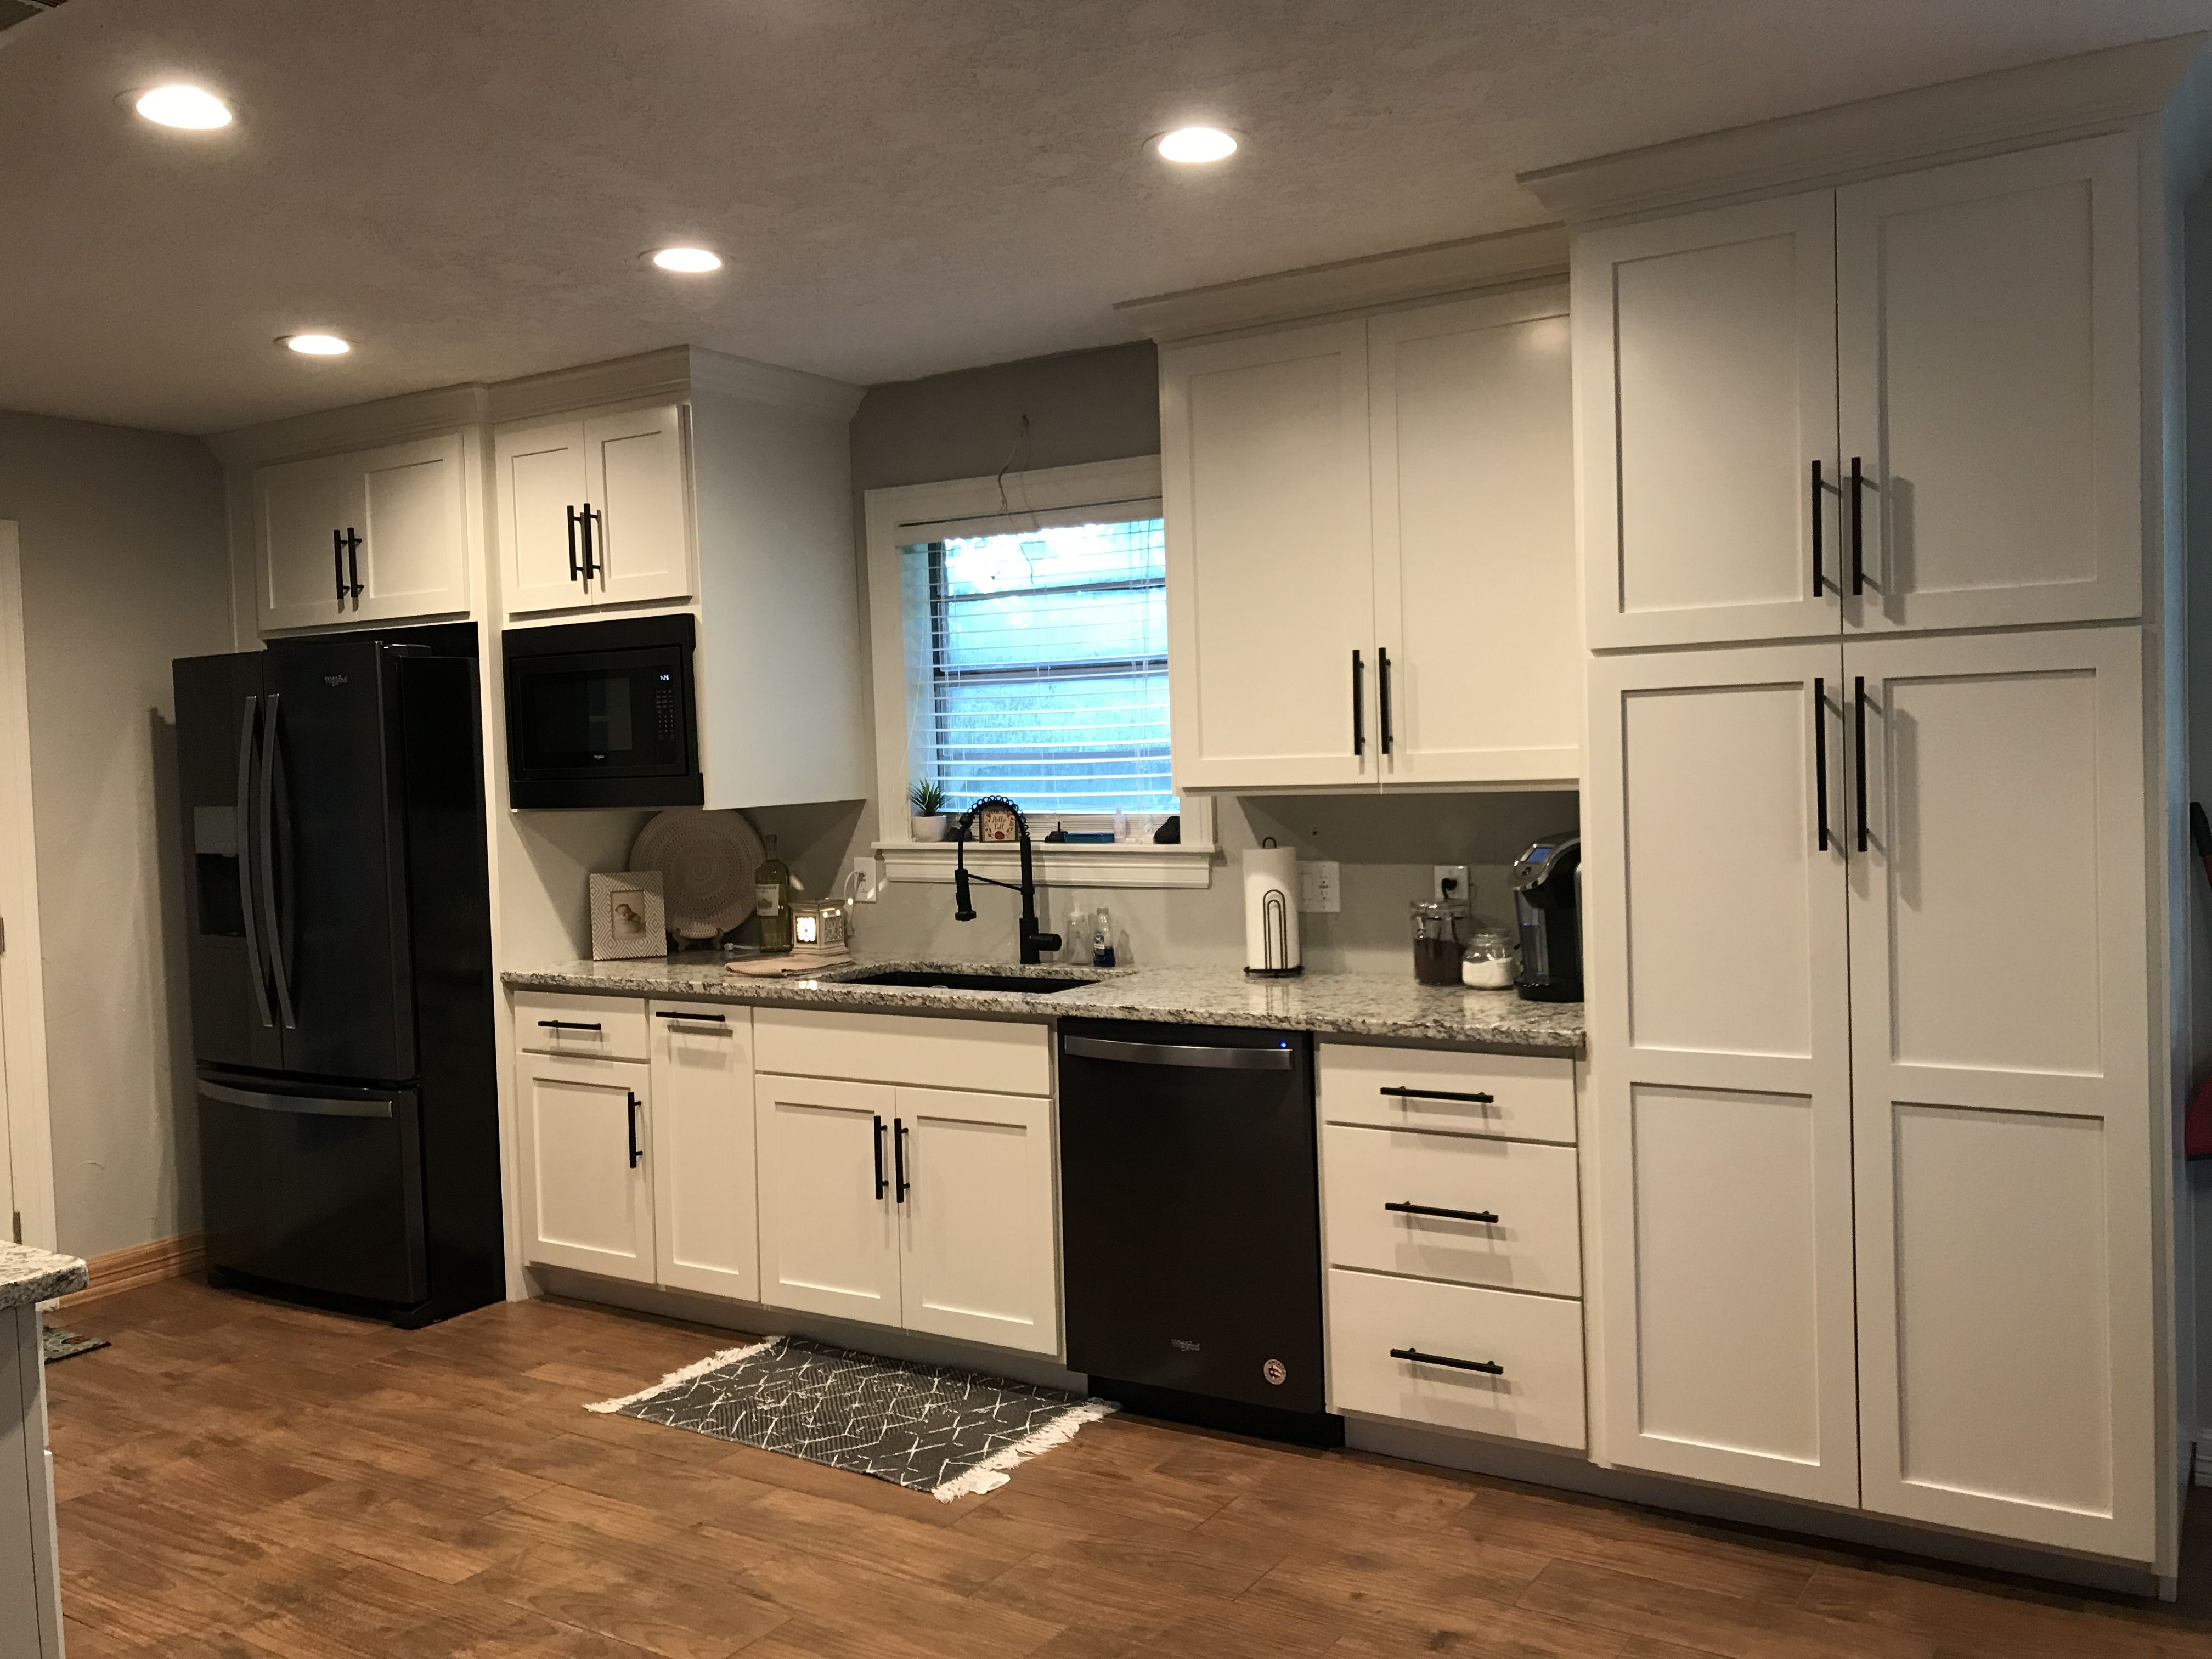 Sherwin Williams Alabaster Kitchen Cabinets With Black Hardware